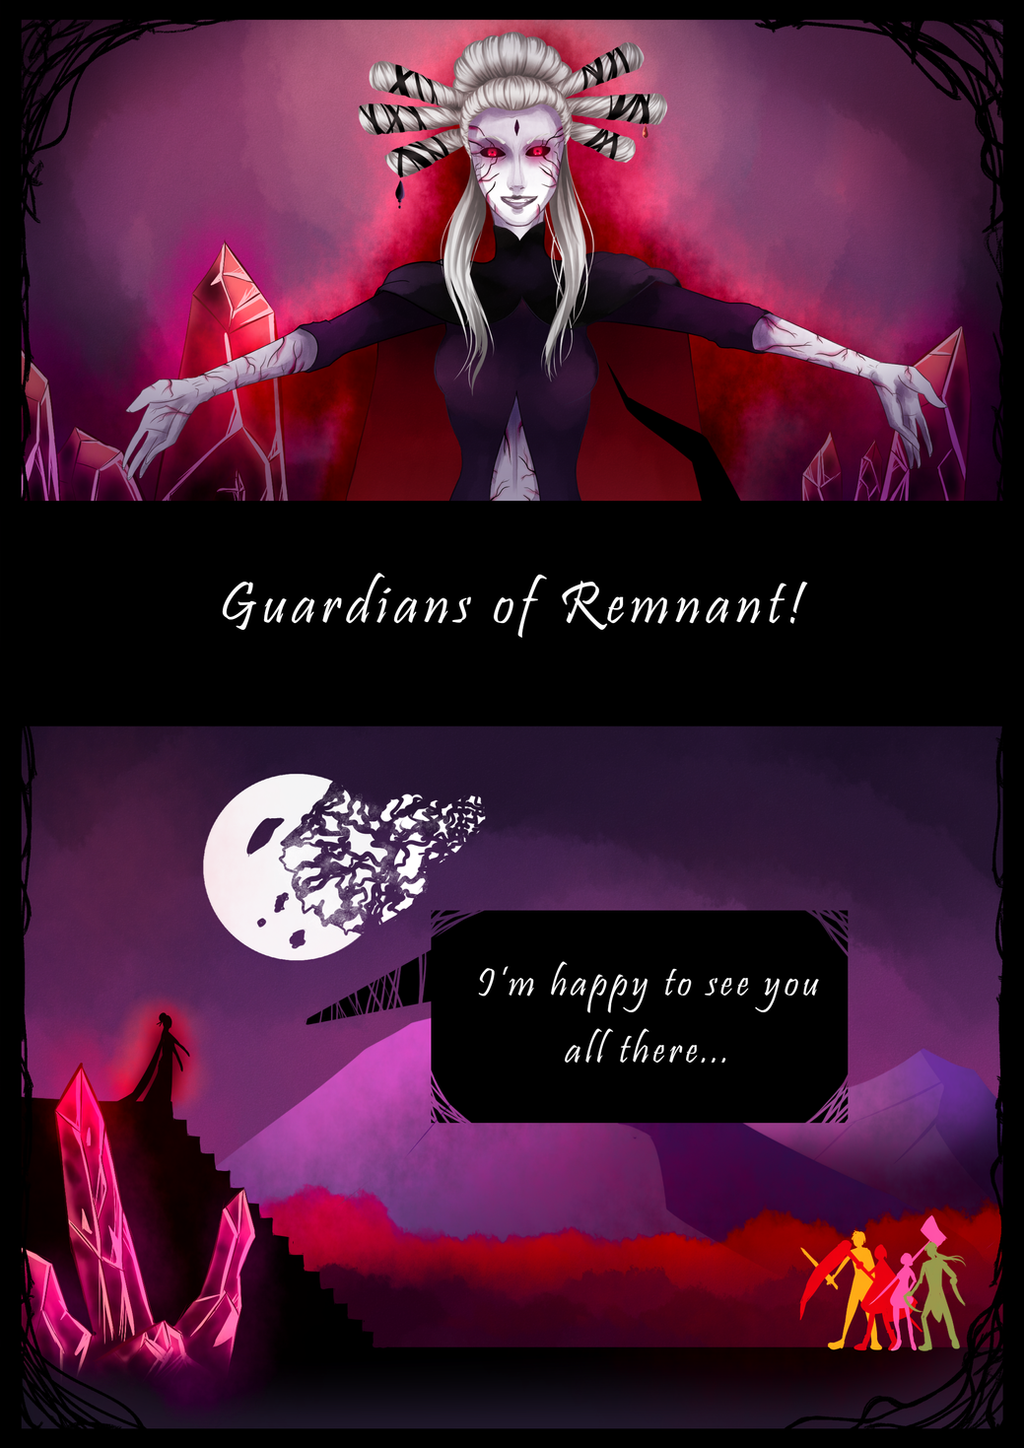 Rwby Short Comic Page 1 By Lealin On Deviantart